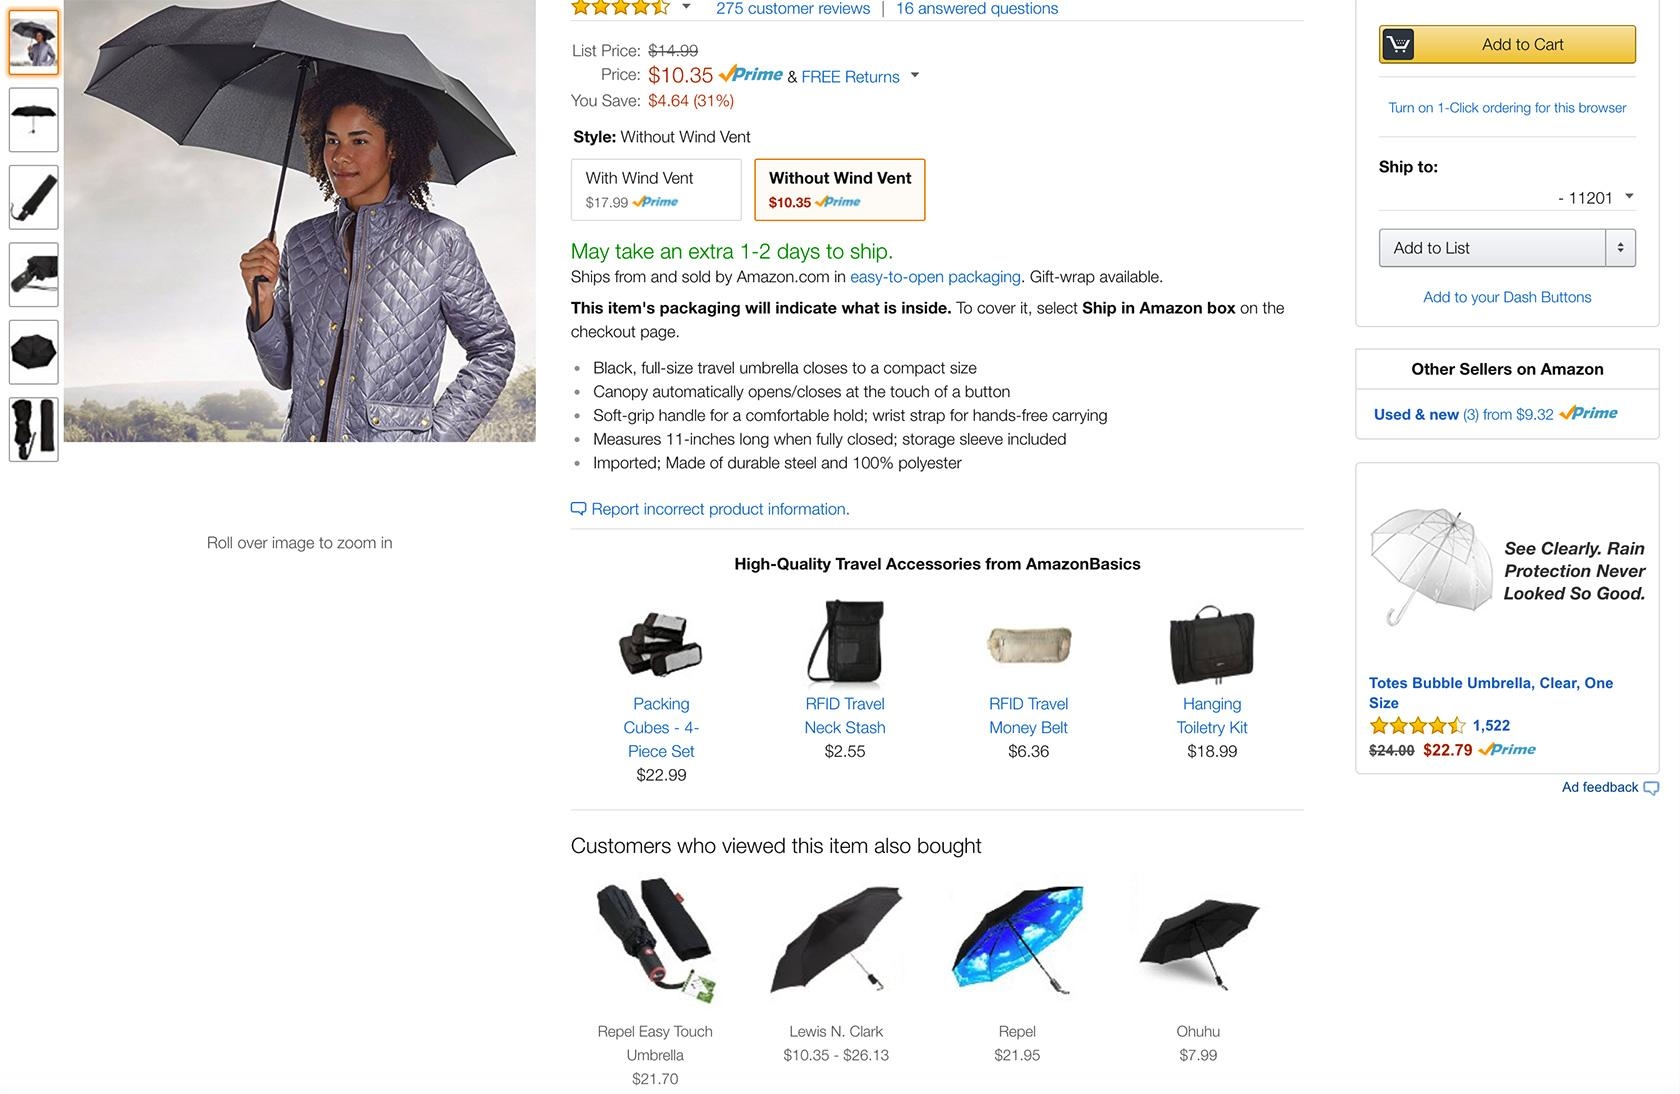 Amazon Website Purchase Patterns